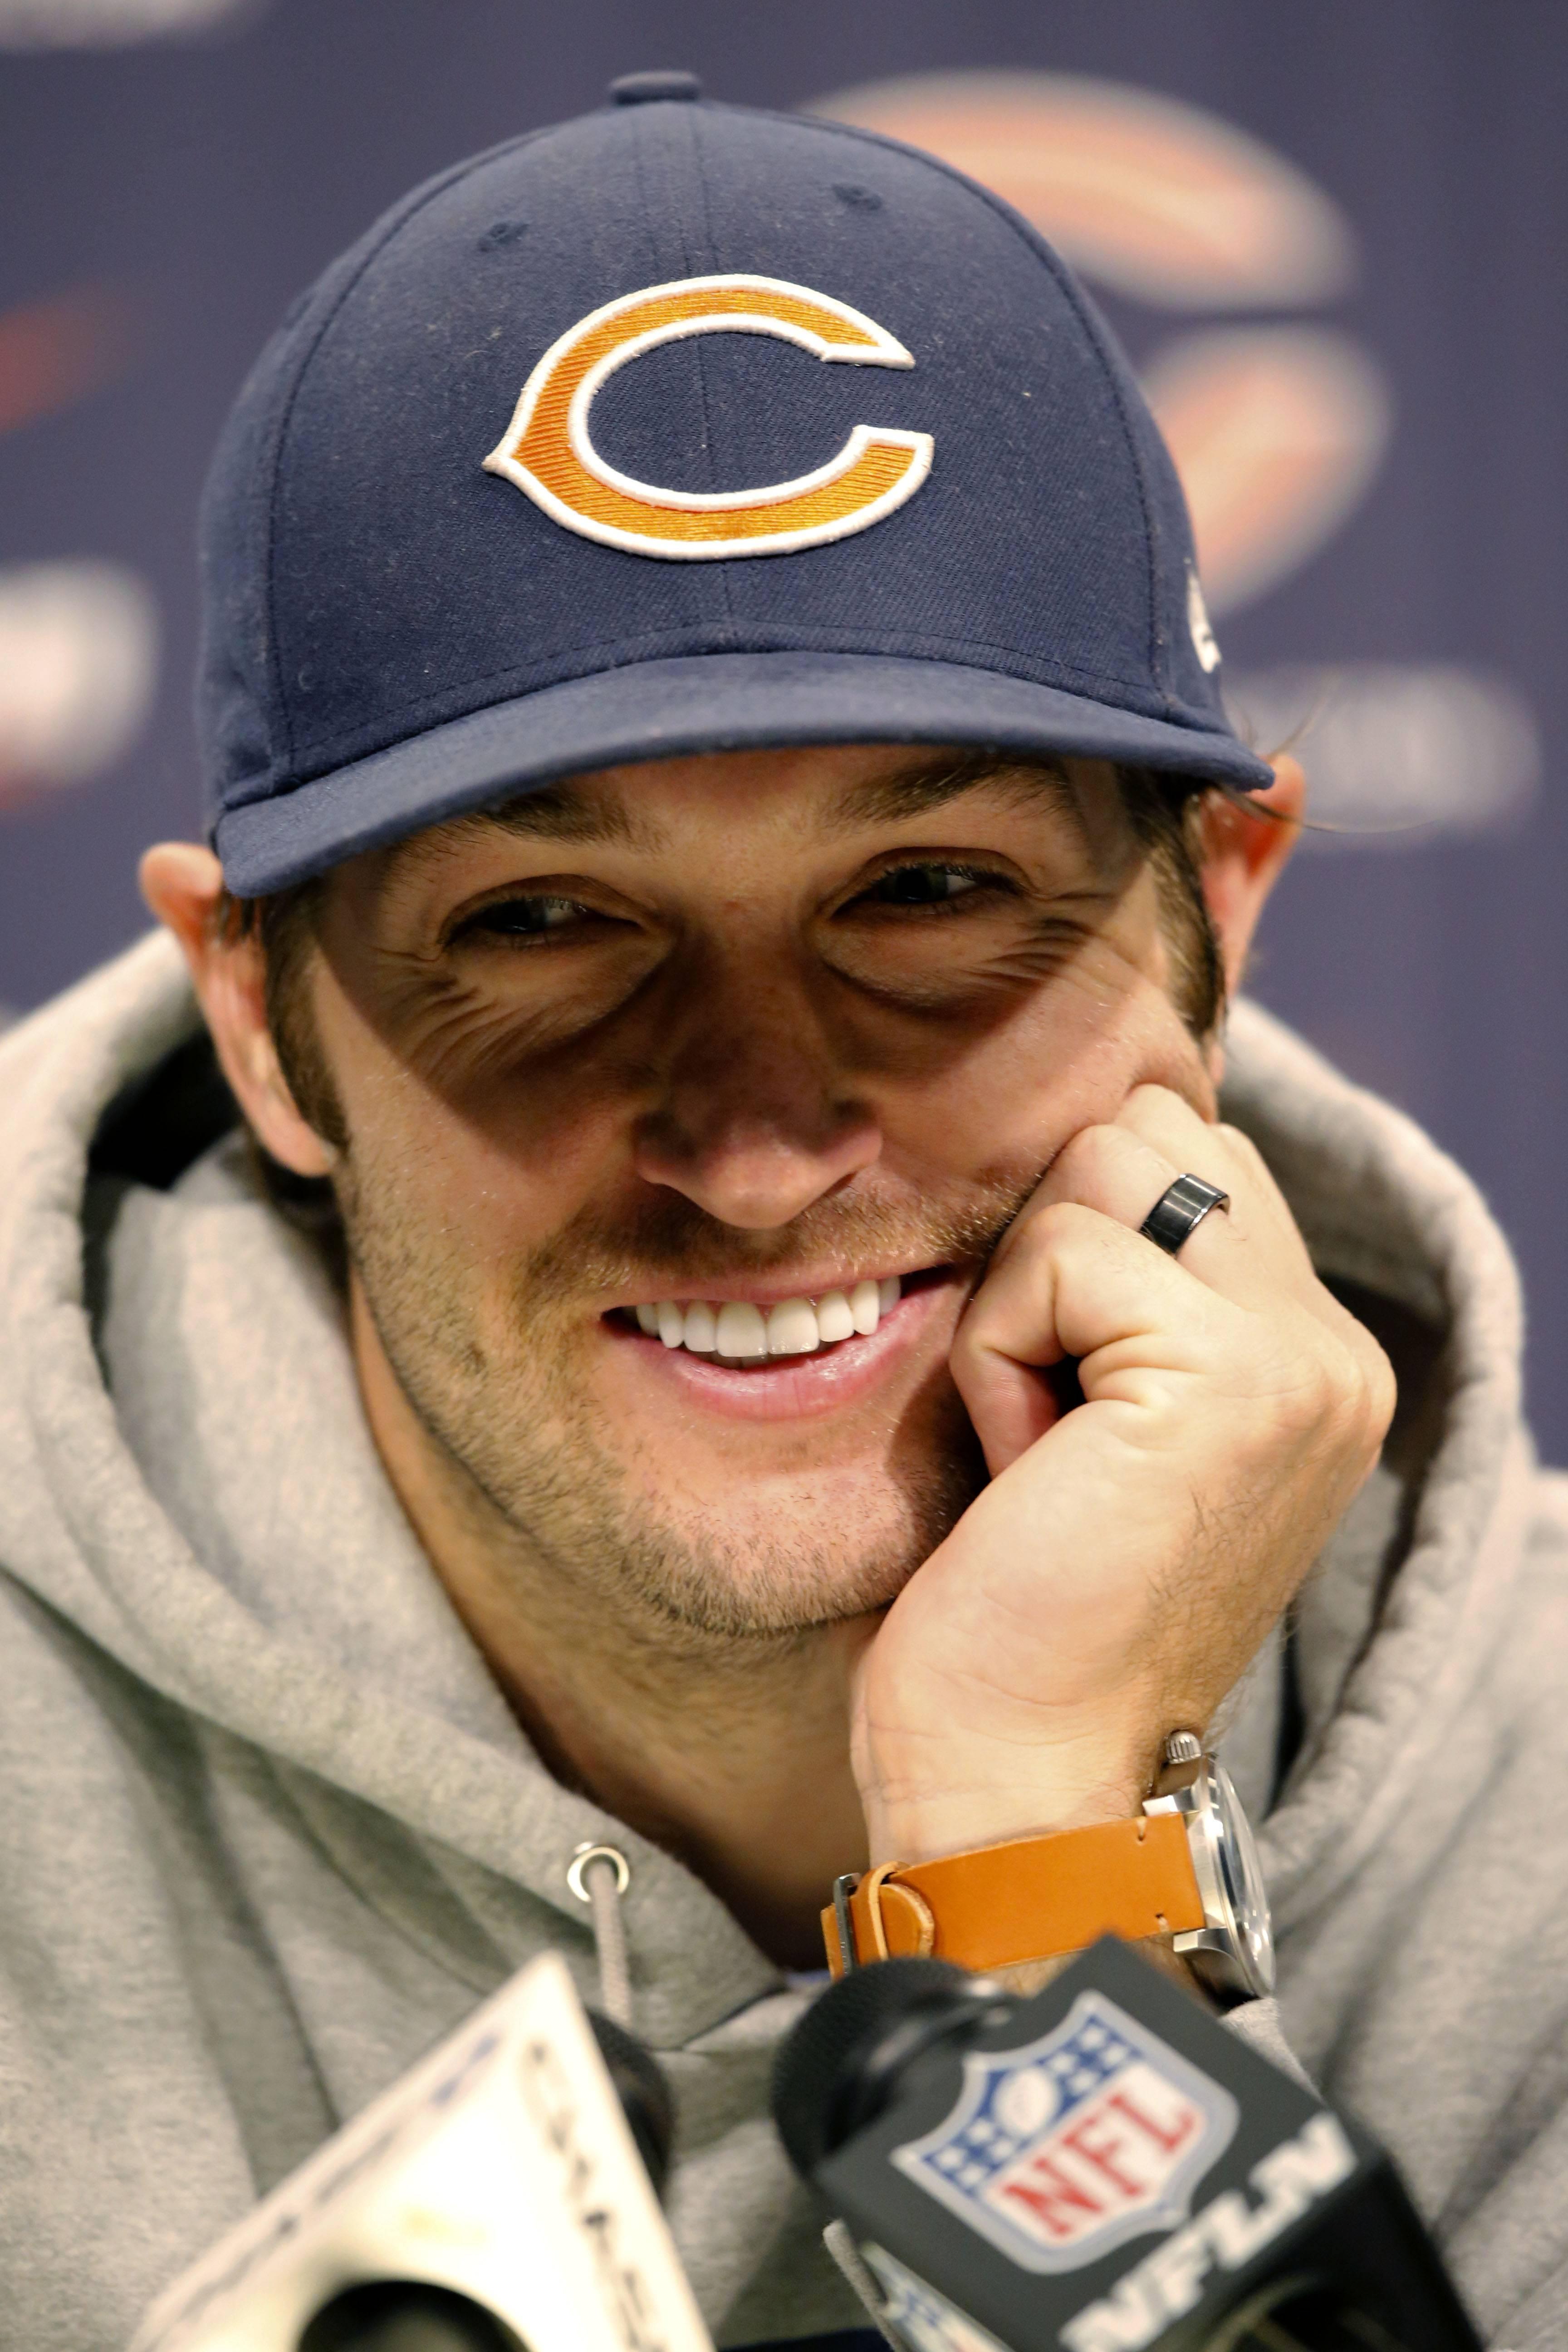 It's just a matter of days now before quarterback Jay Cutler and the Bears regroup for the opening of training camp.